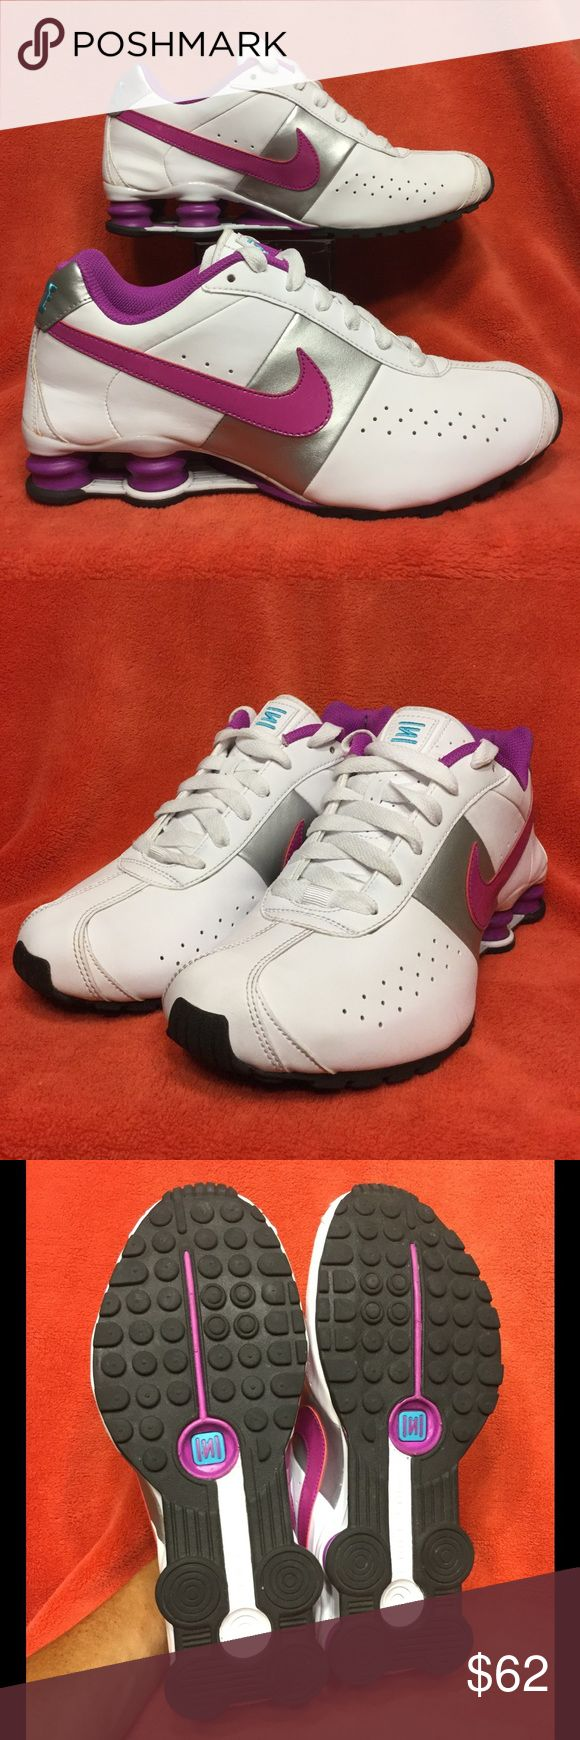 NIKE SHOX CLASSIC II magenta/silver . w10 42 m8.5 Very clean (like new) . Minimal wear . No issues Nike Shoes